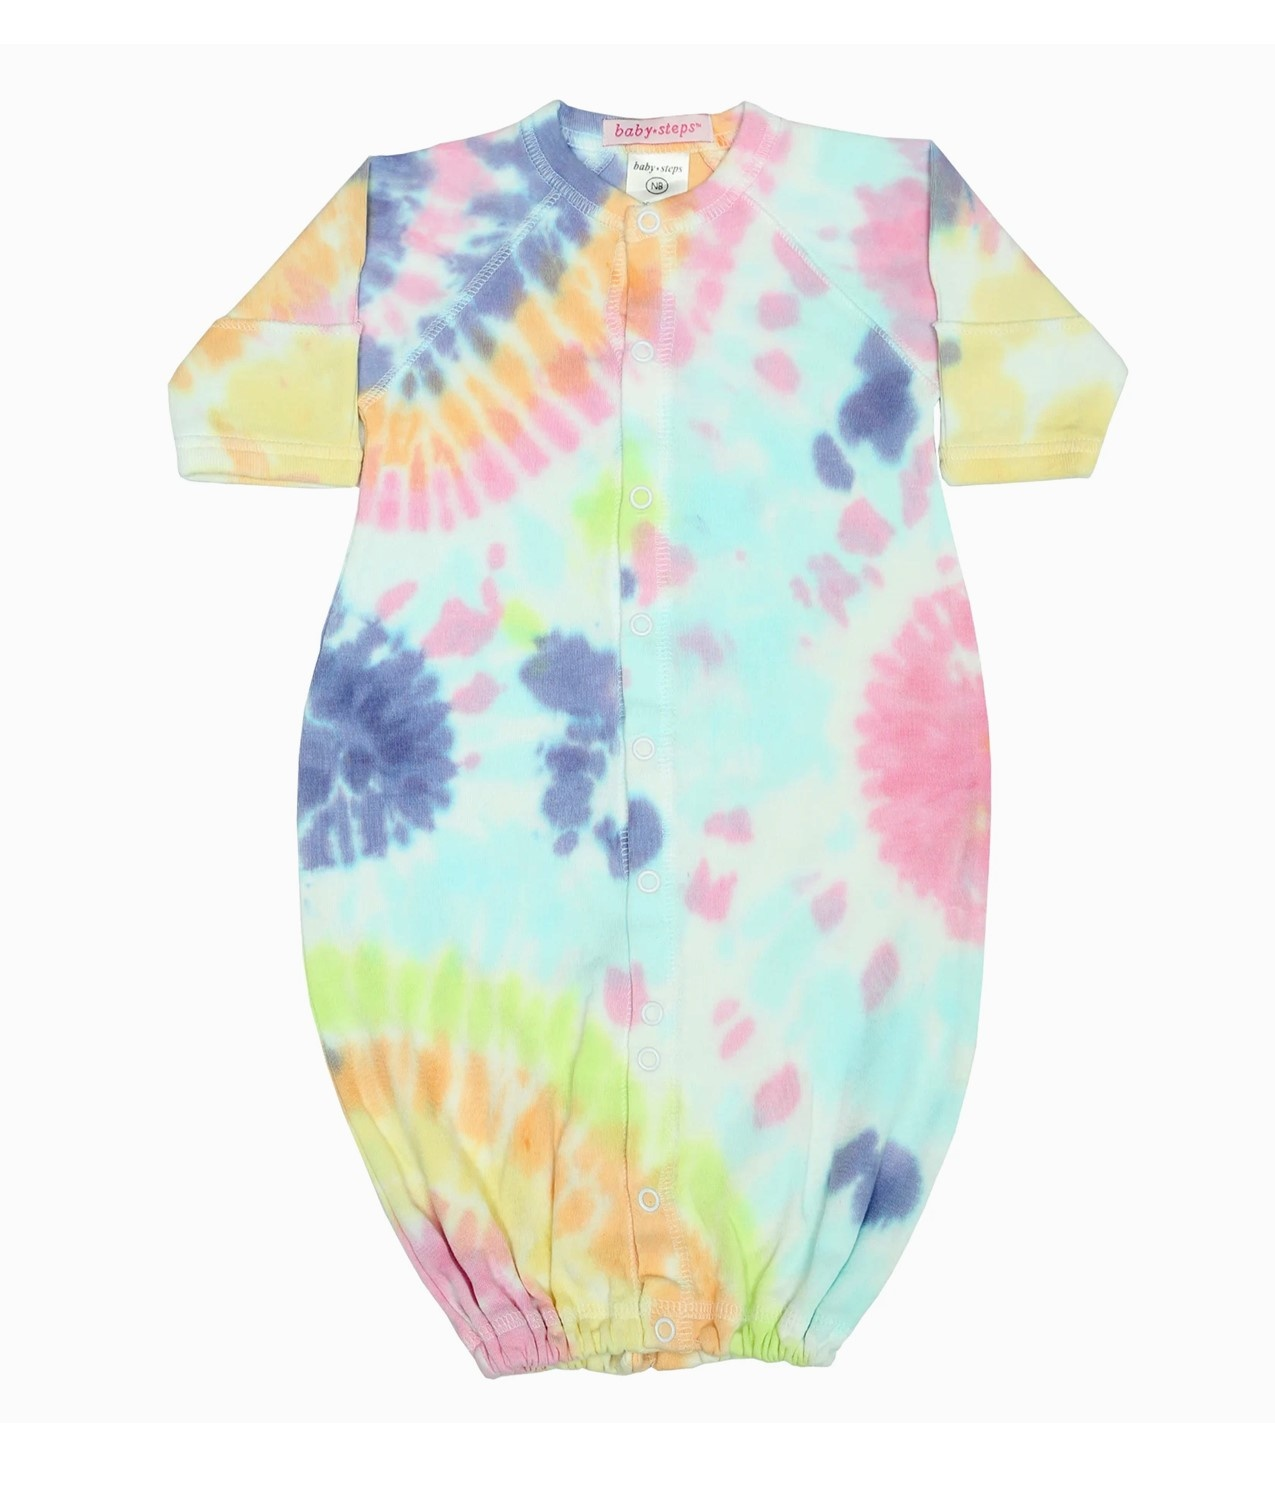 Baby Steps Colorful Rainbow Tie Dye Converter Gown NB